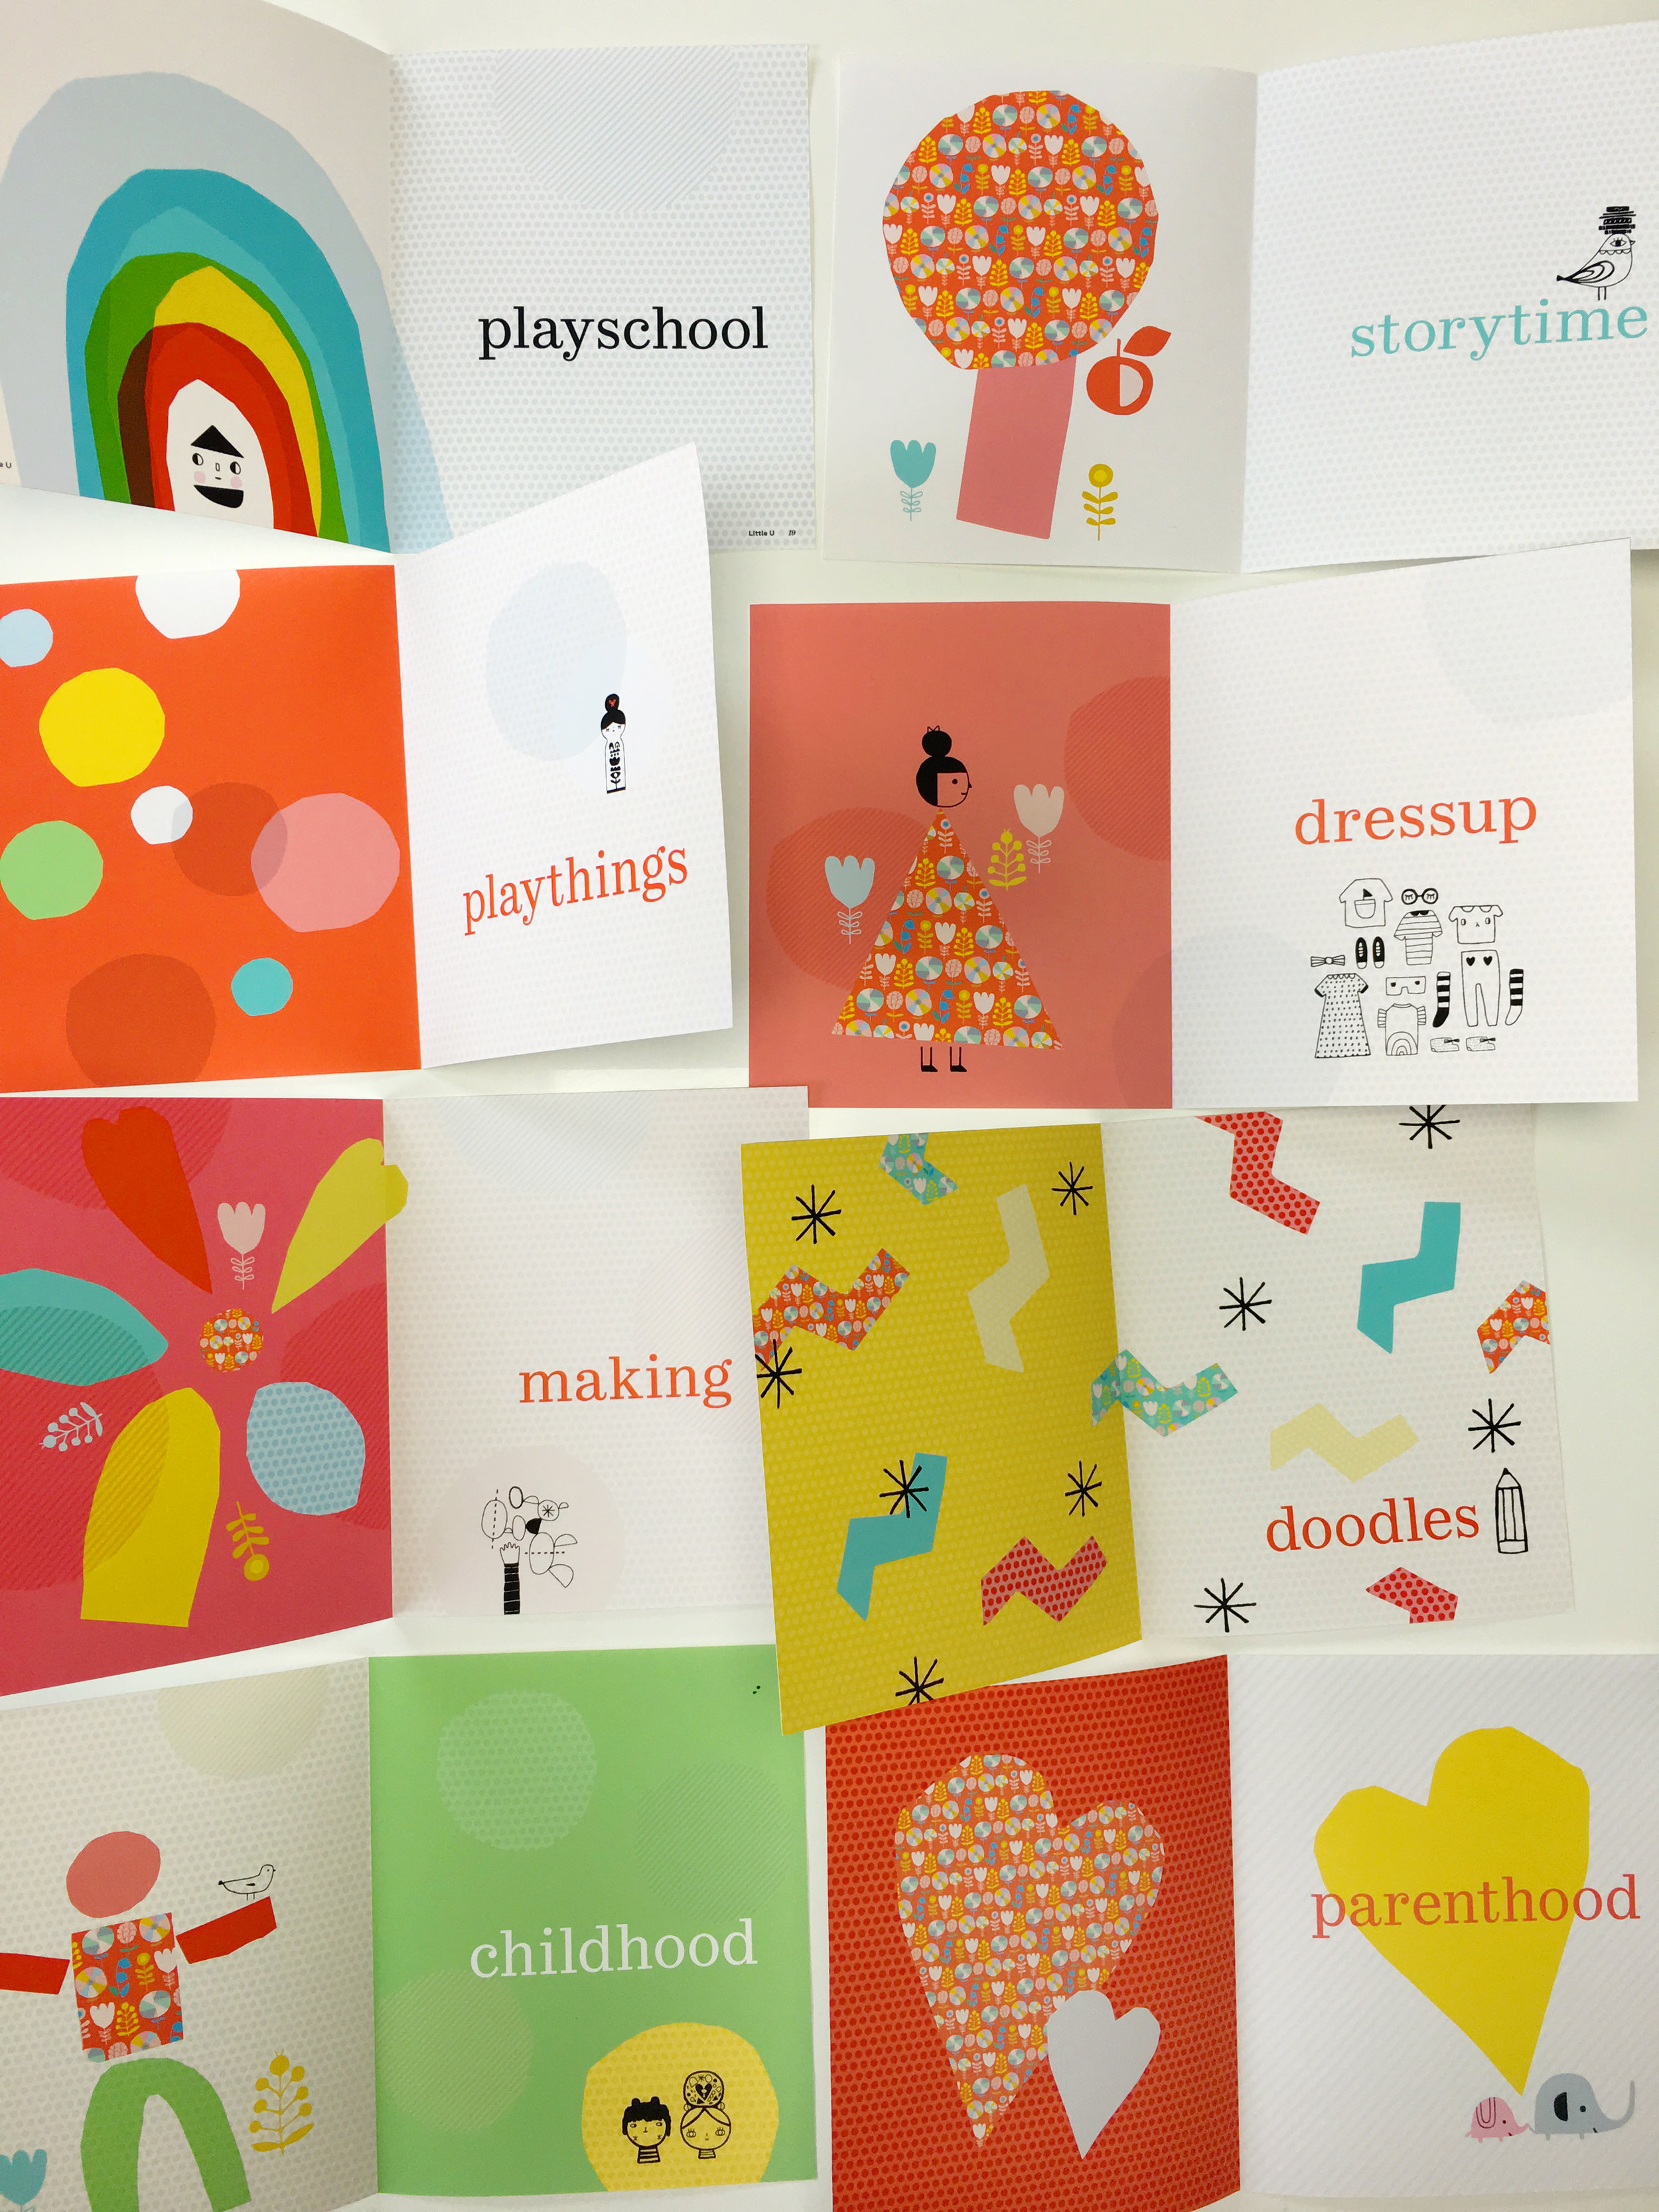 Here are the divider pages using Finley's cut paper shapes and Suzy Ultman's line drawings.